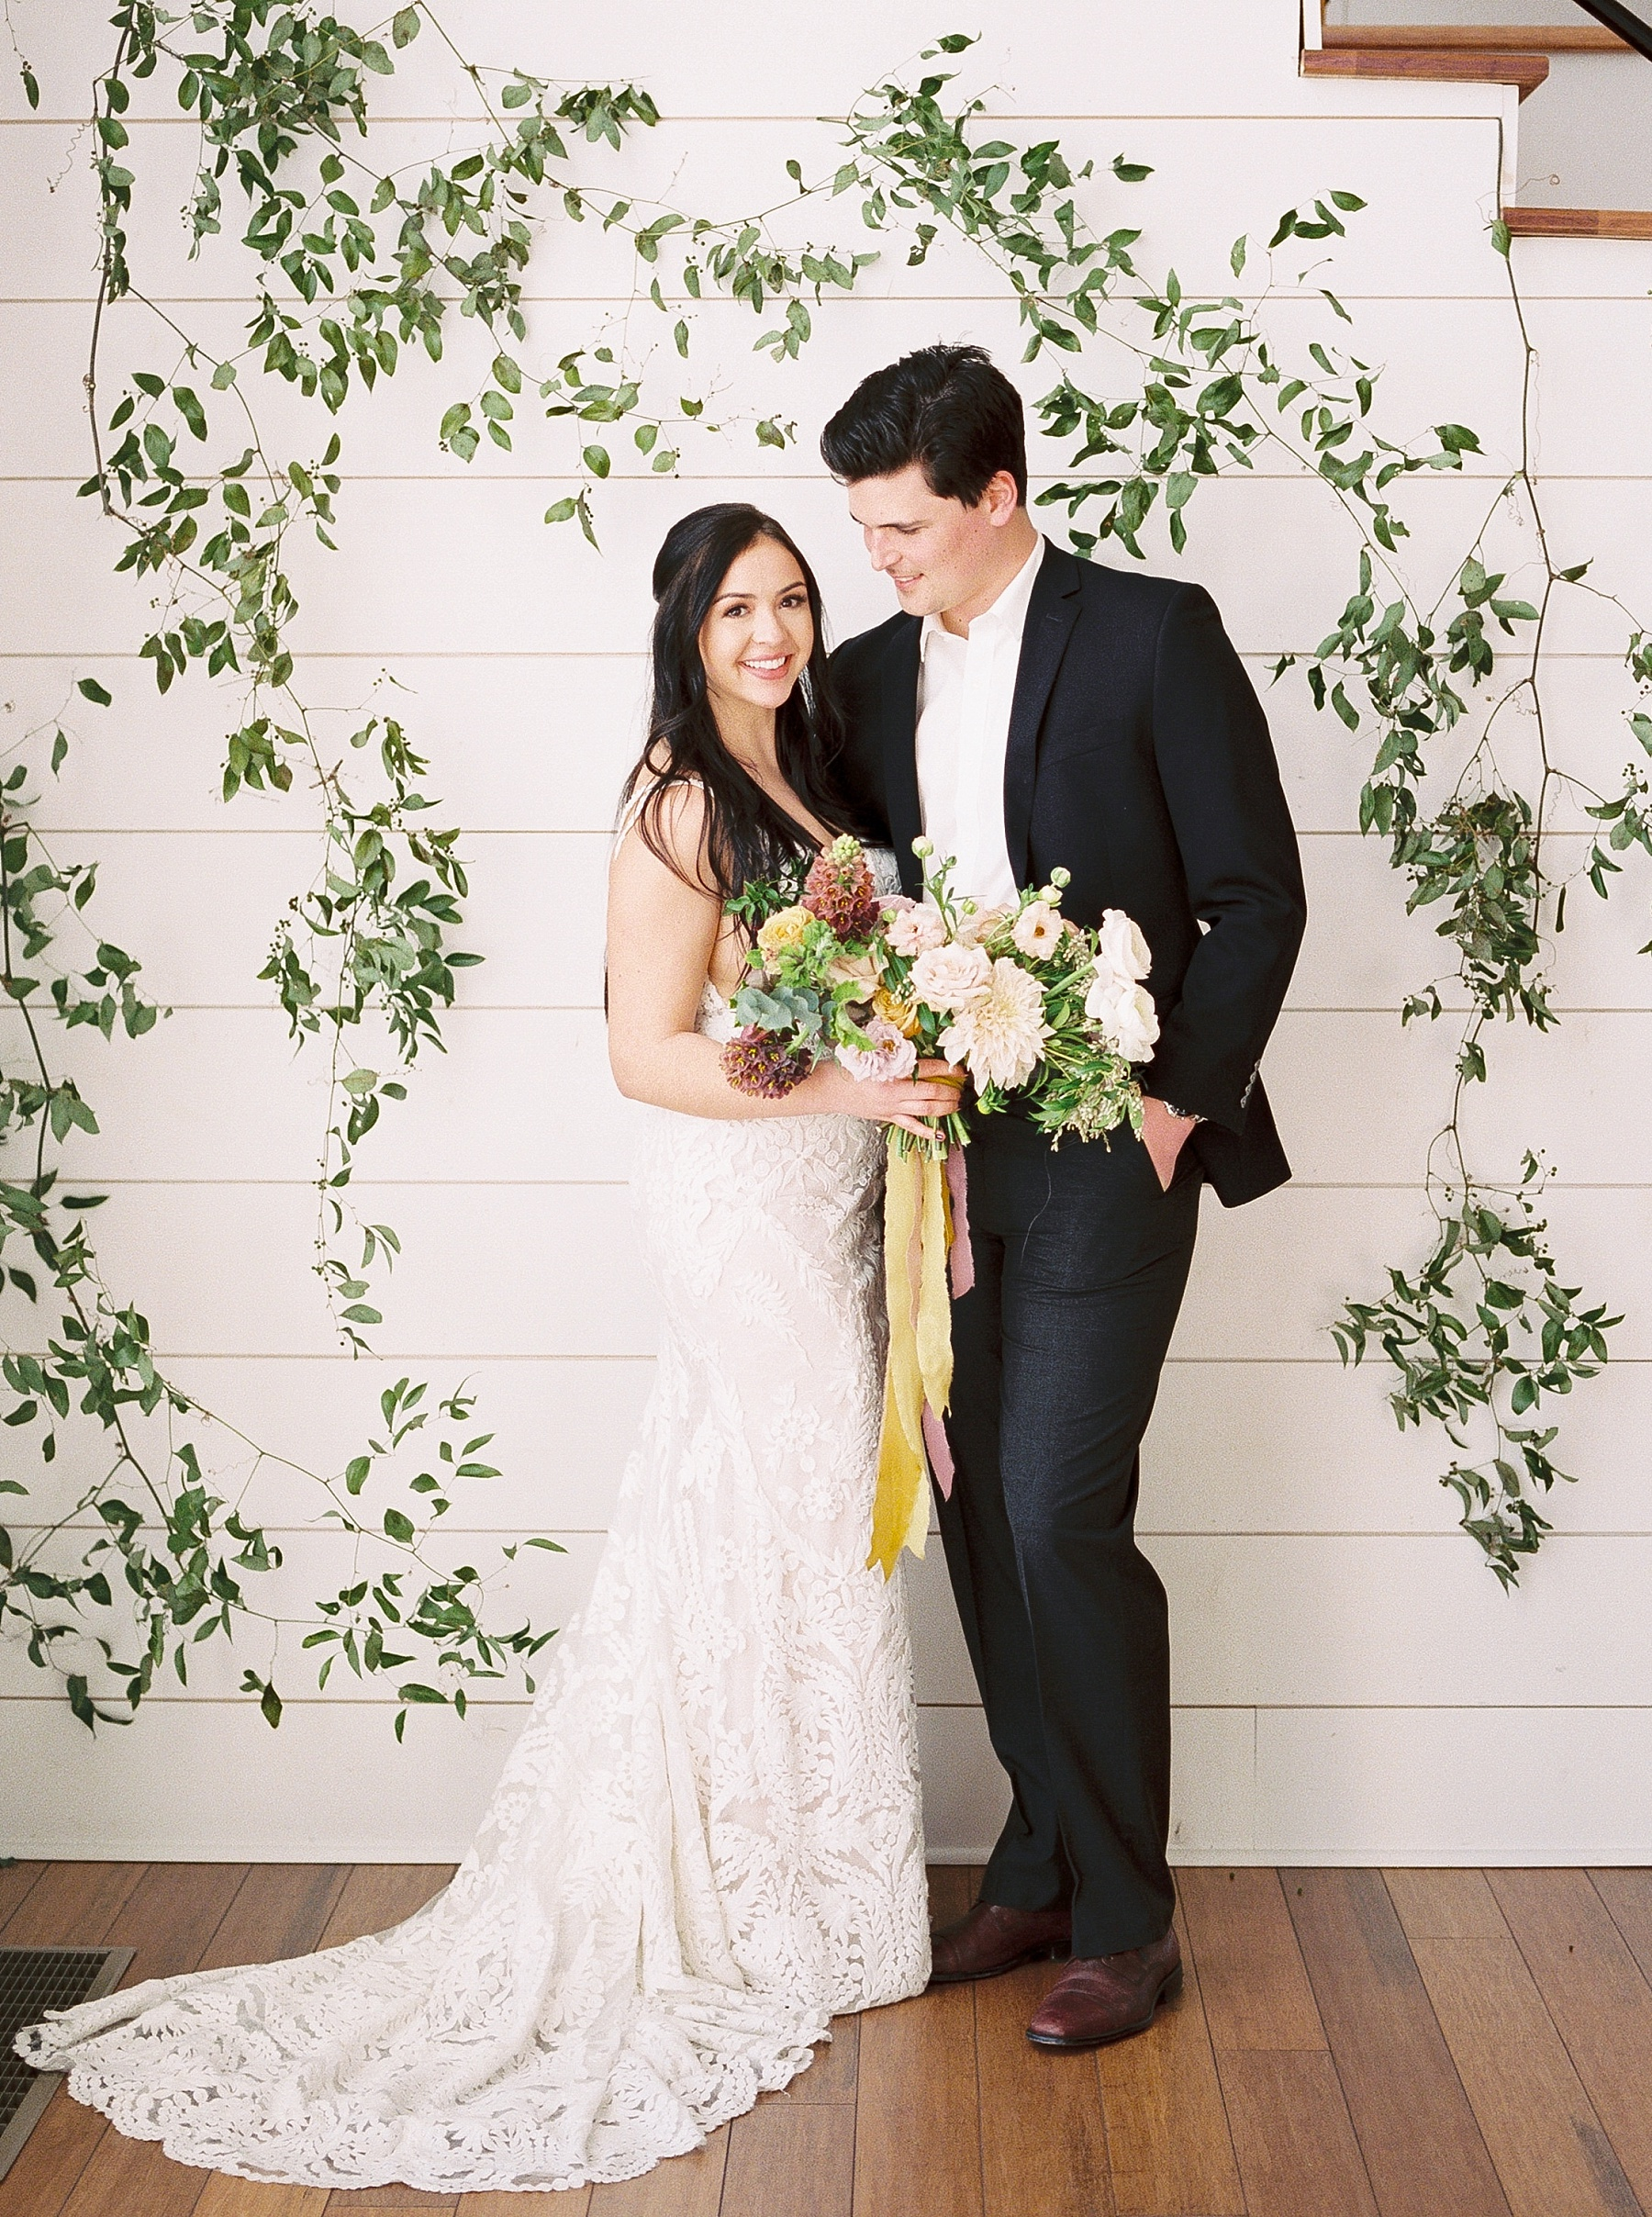 Lakeside Sunset Wedding with Magnificent Abundance of Blooms at Emerson Fields by Kelsi Kliethermes Photography Best Missouri and Maui Wedding Photographer_0040.jpg